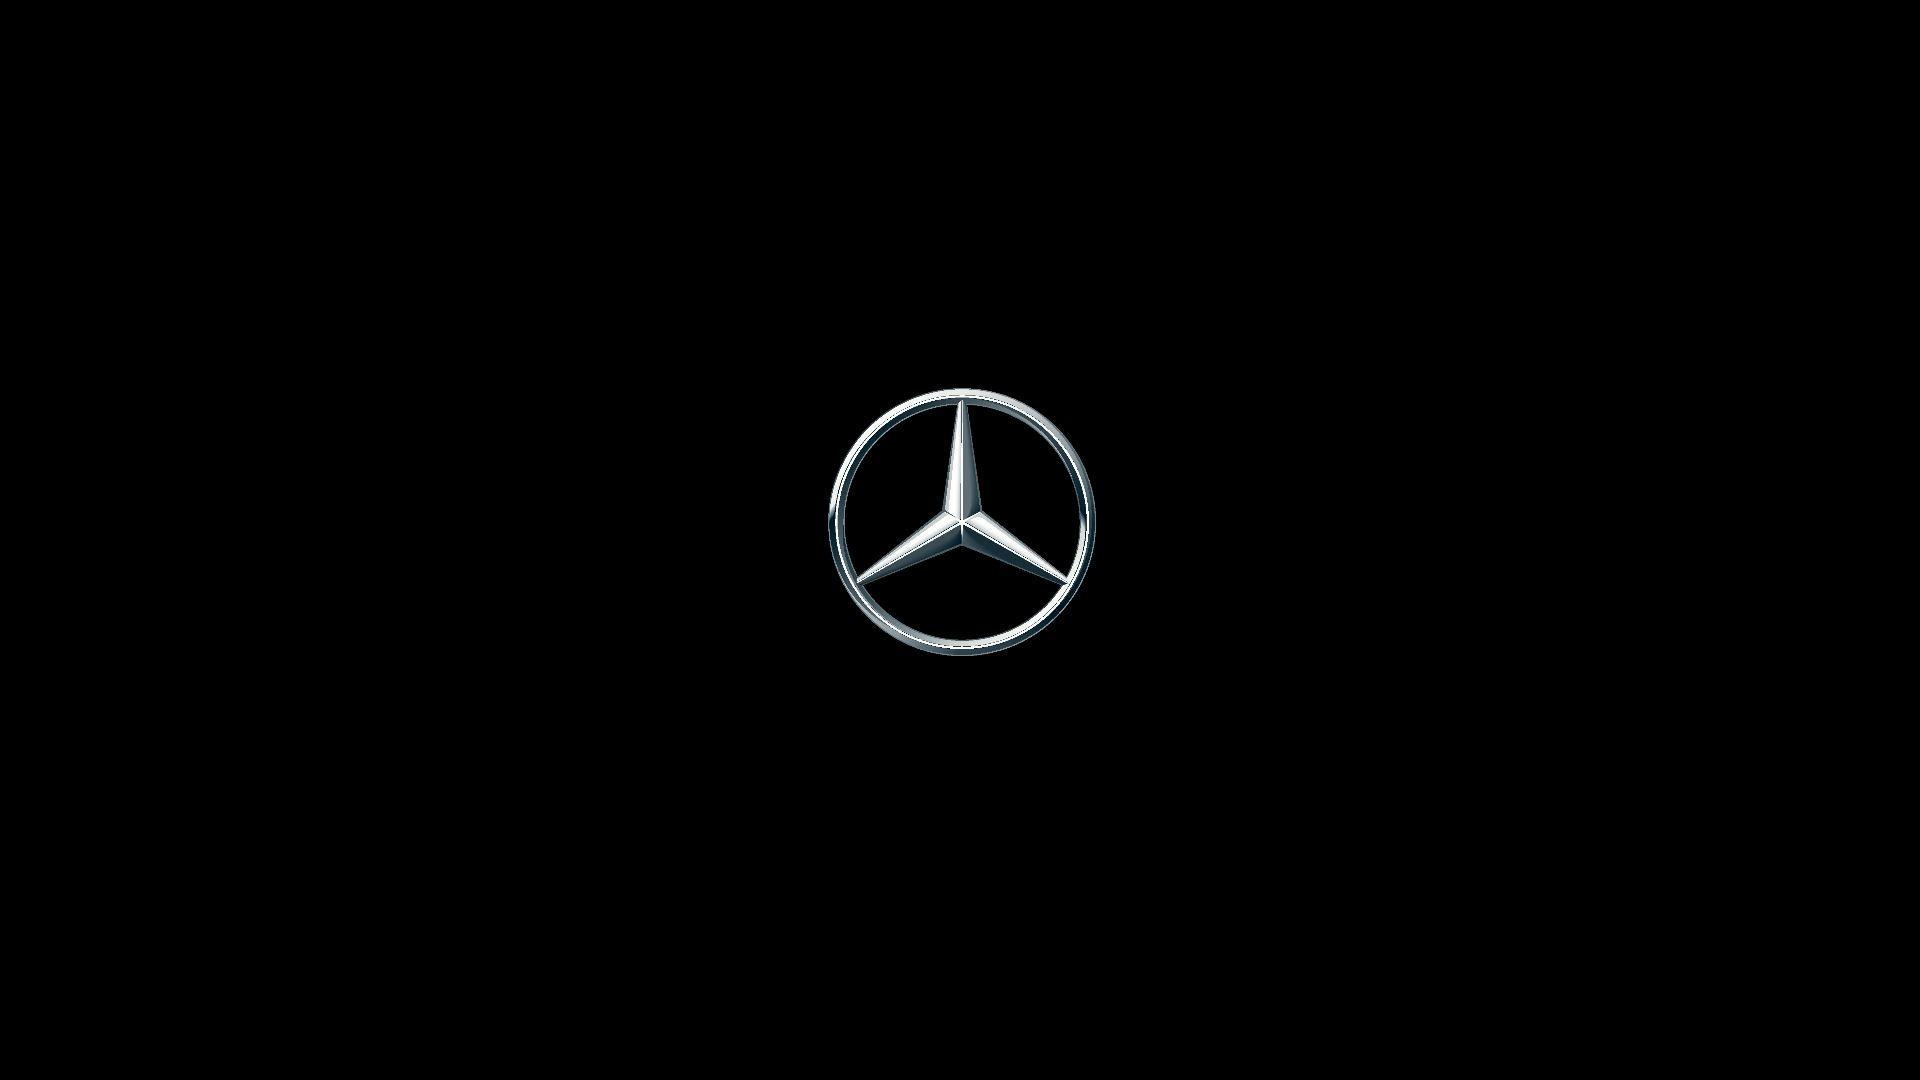 benz logo wallpapers wallpaper - photo #6